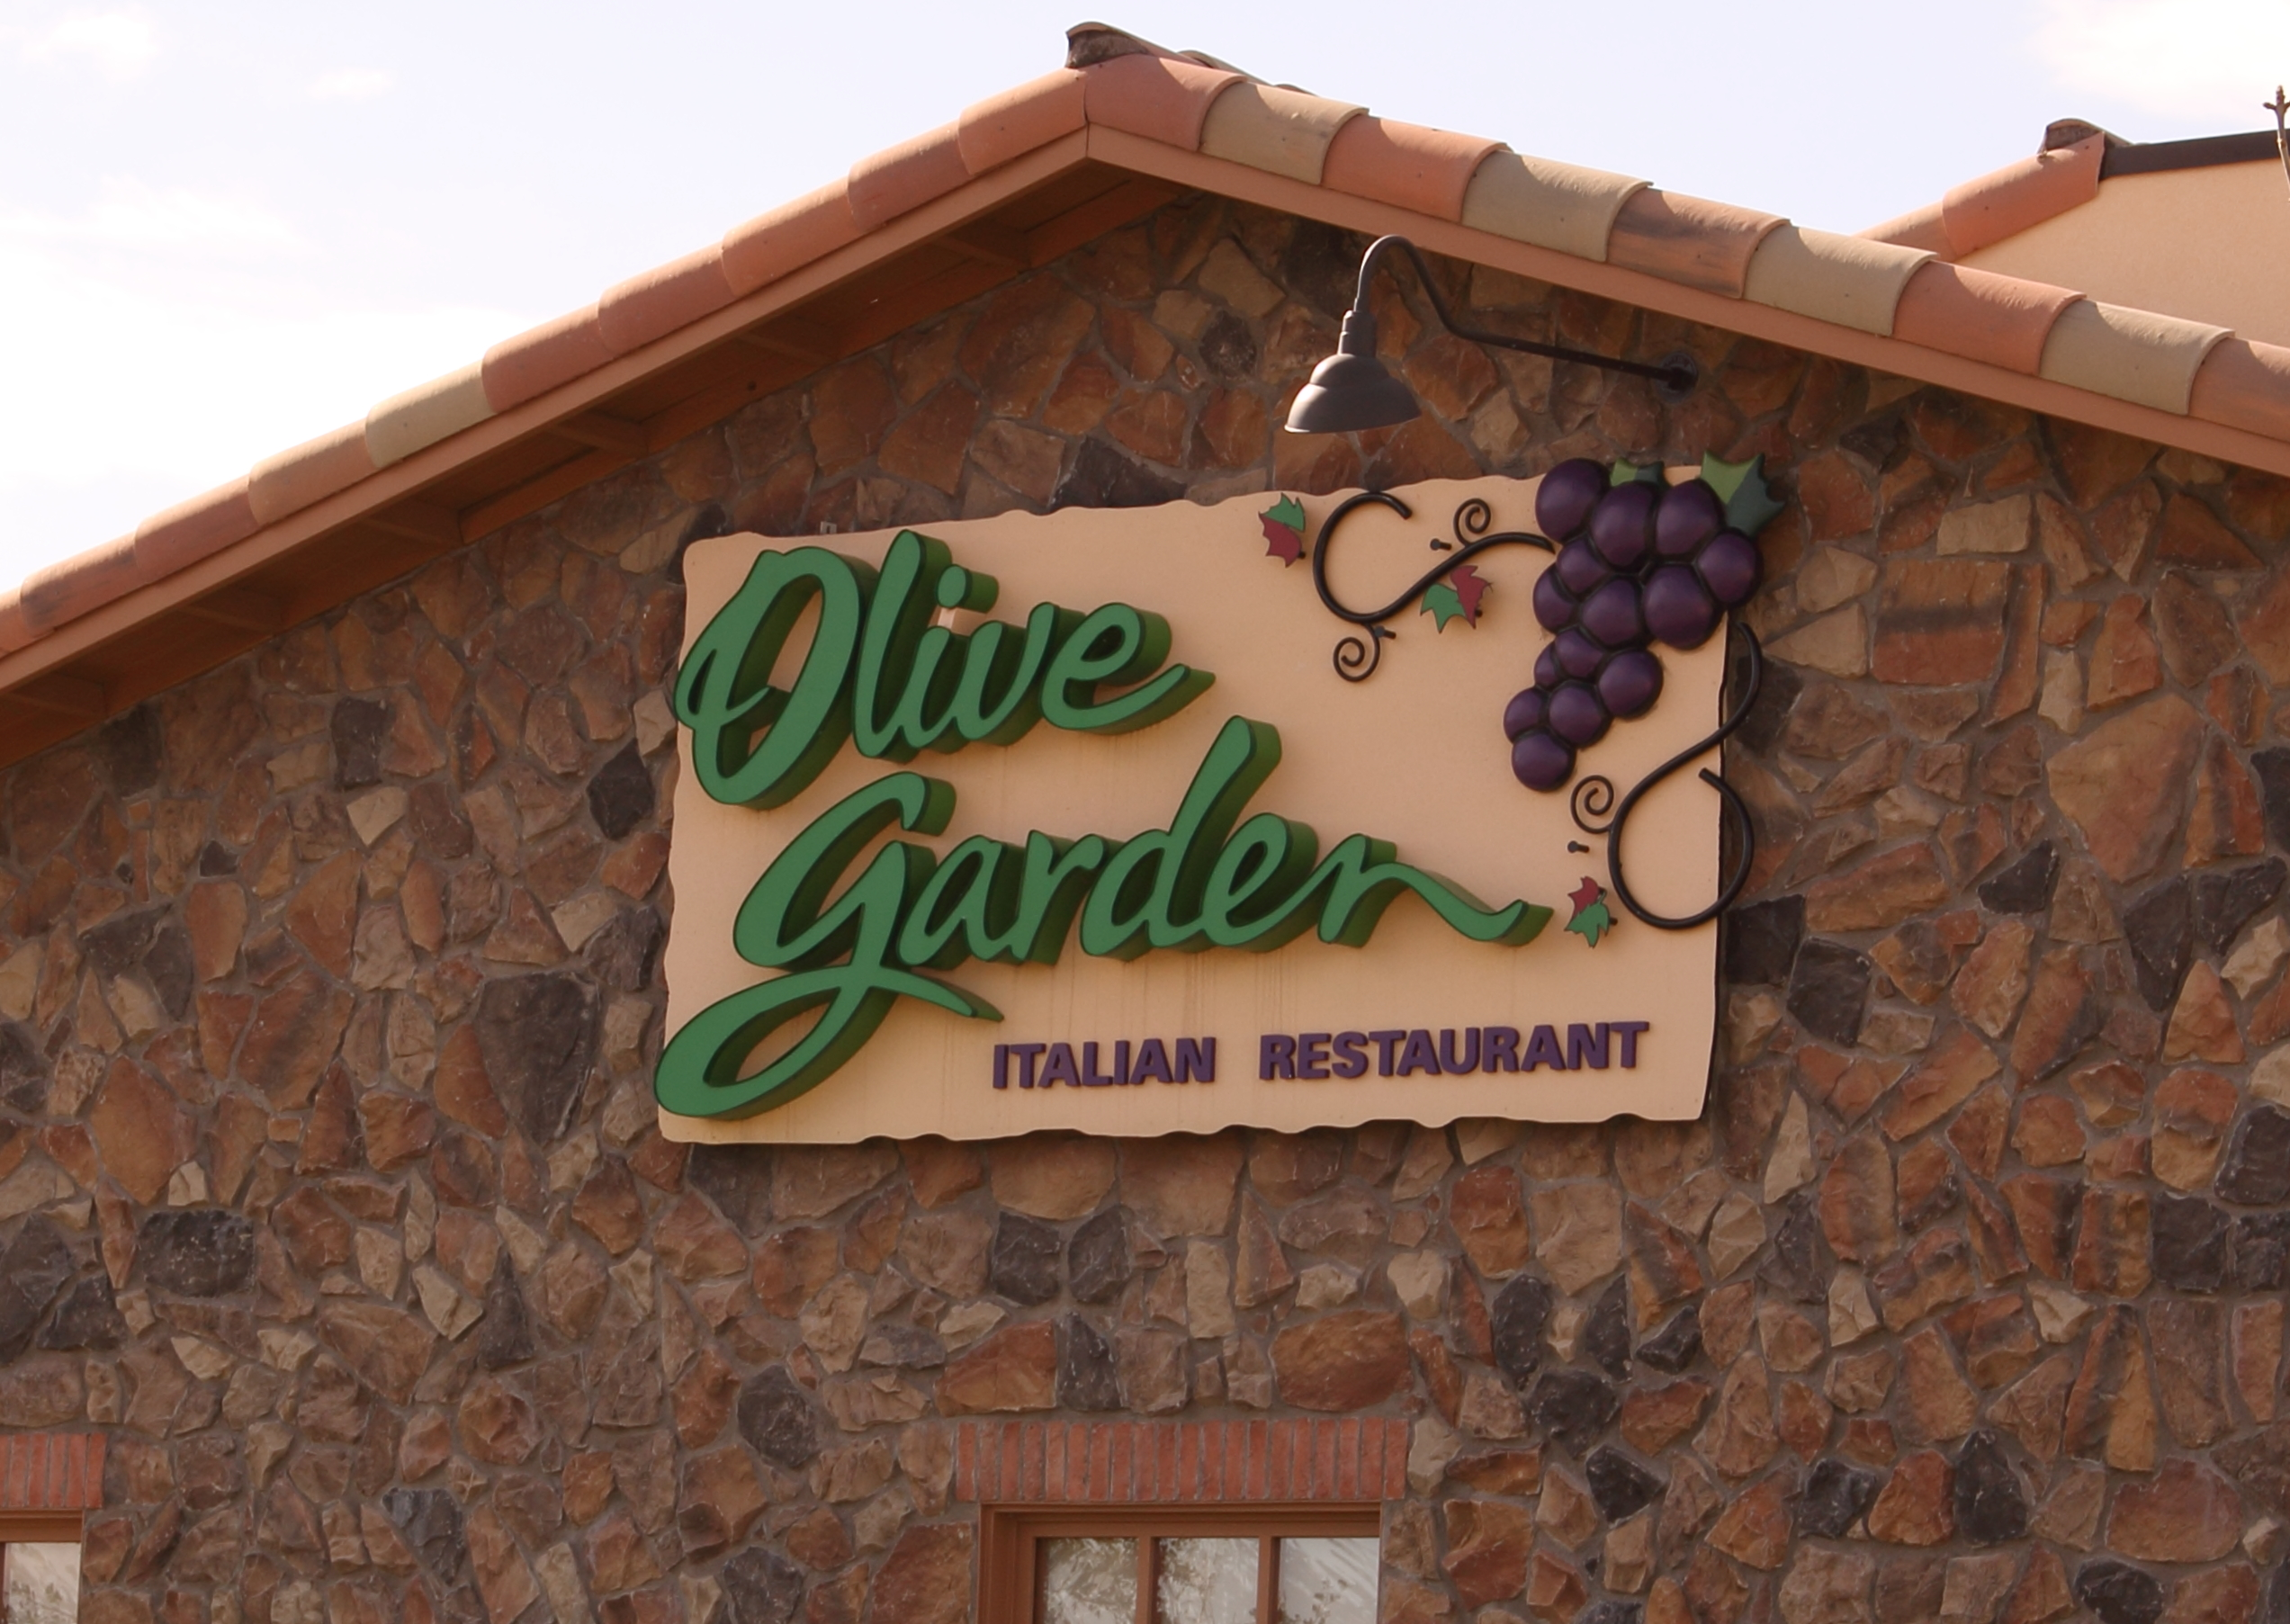 Olive Garden sign on the exterior of a restaurant, the background is stone.